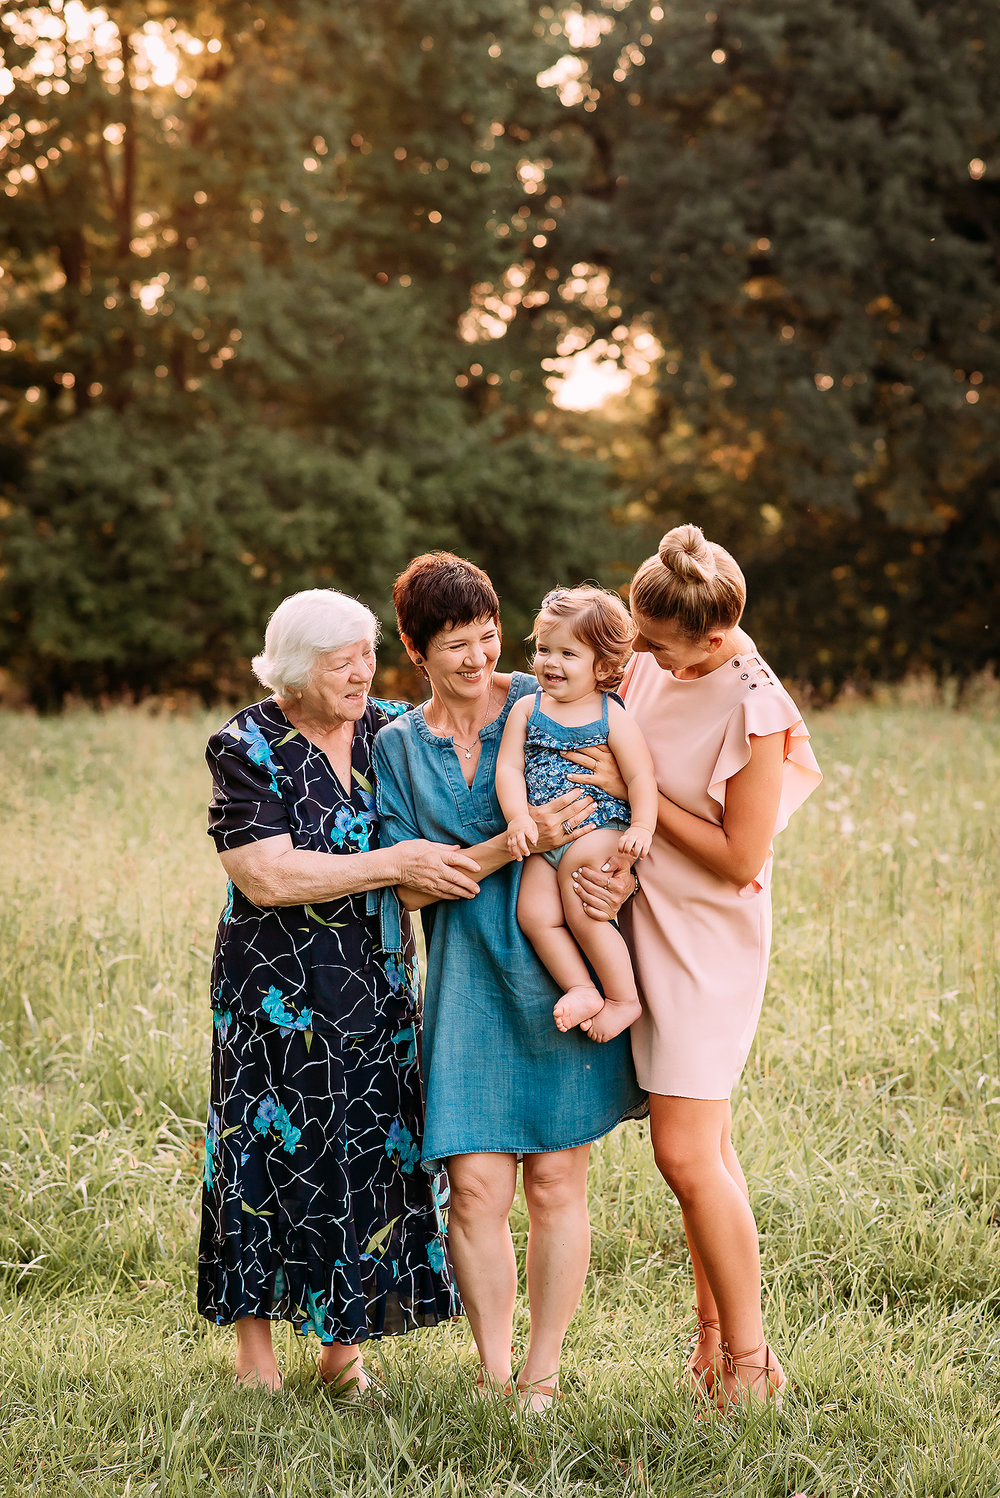 Baltimore Maryland Family Photography Hampton mansion Towson 4 generations photo Jessica Fenfert